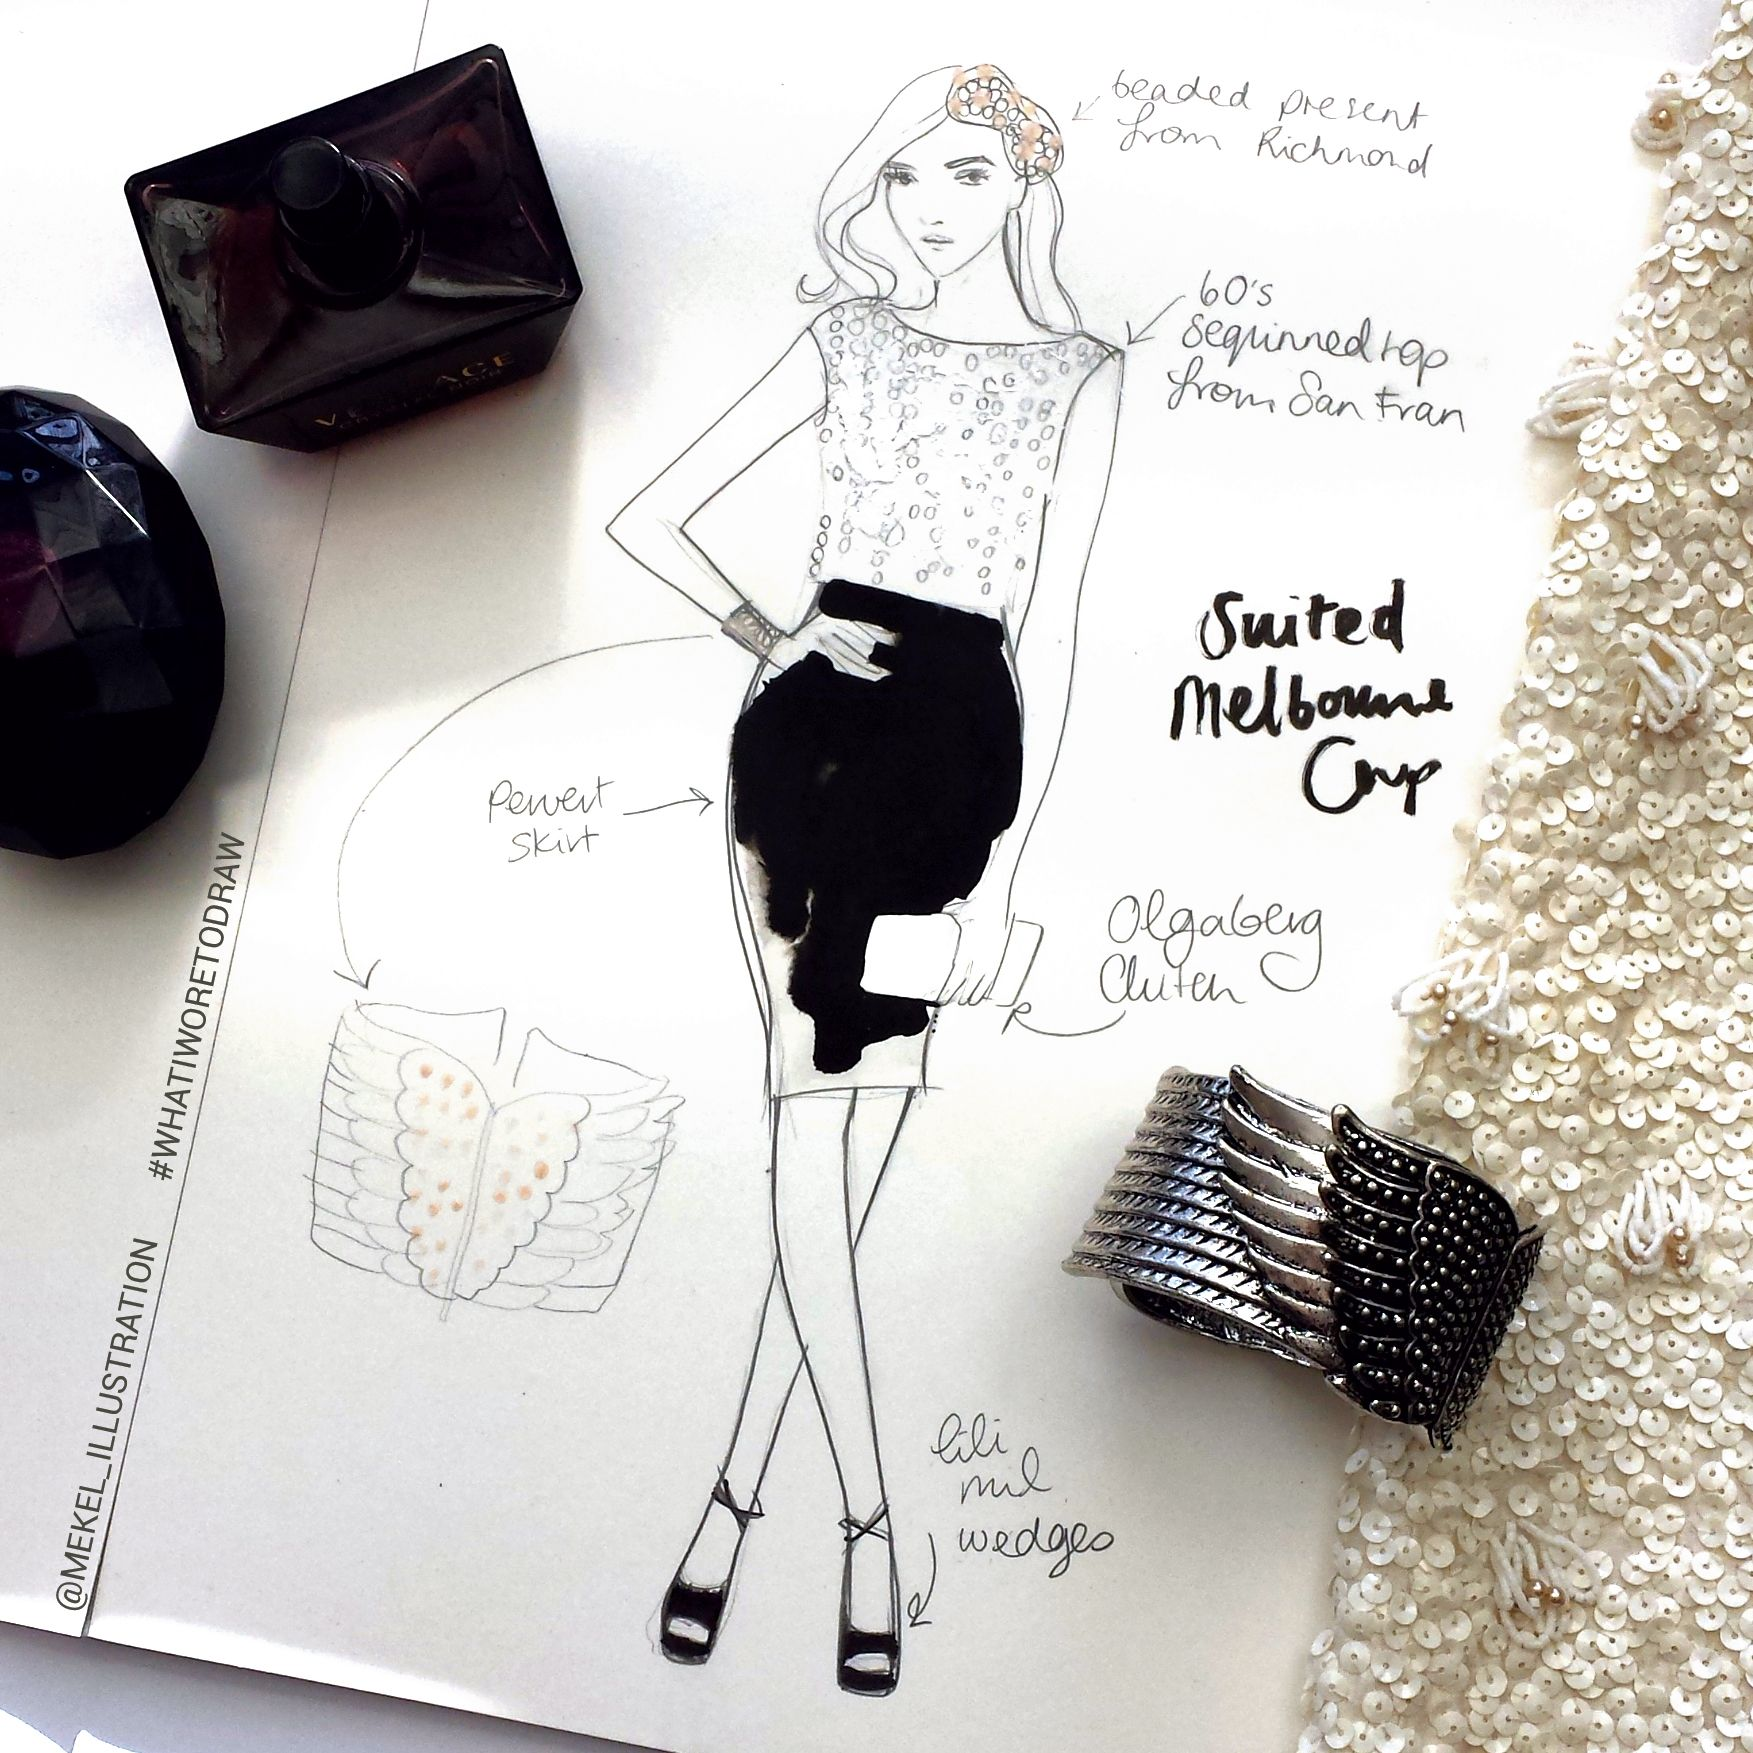 What I Wore To Draw Vintage Sequin Top Black Pervert Dress Skirt Melbourne Beaded Headpiece Melbourne With Images Fashion Illustration Beaded Headpiece Vintage Sequin Top